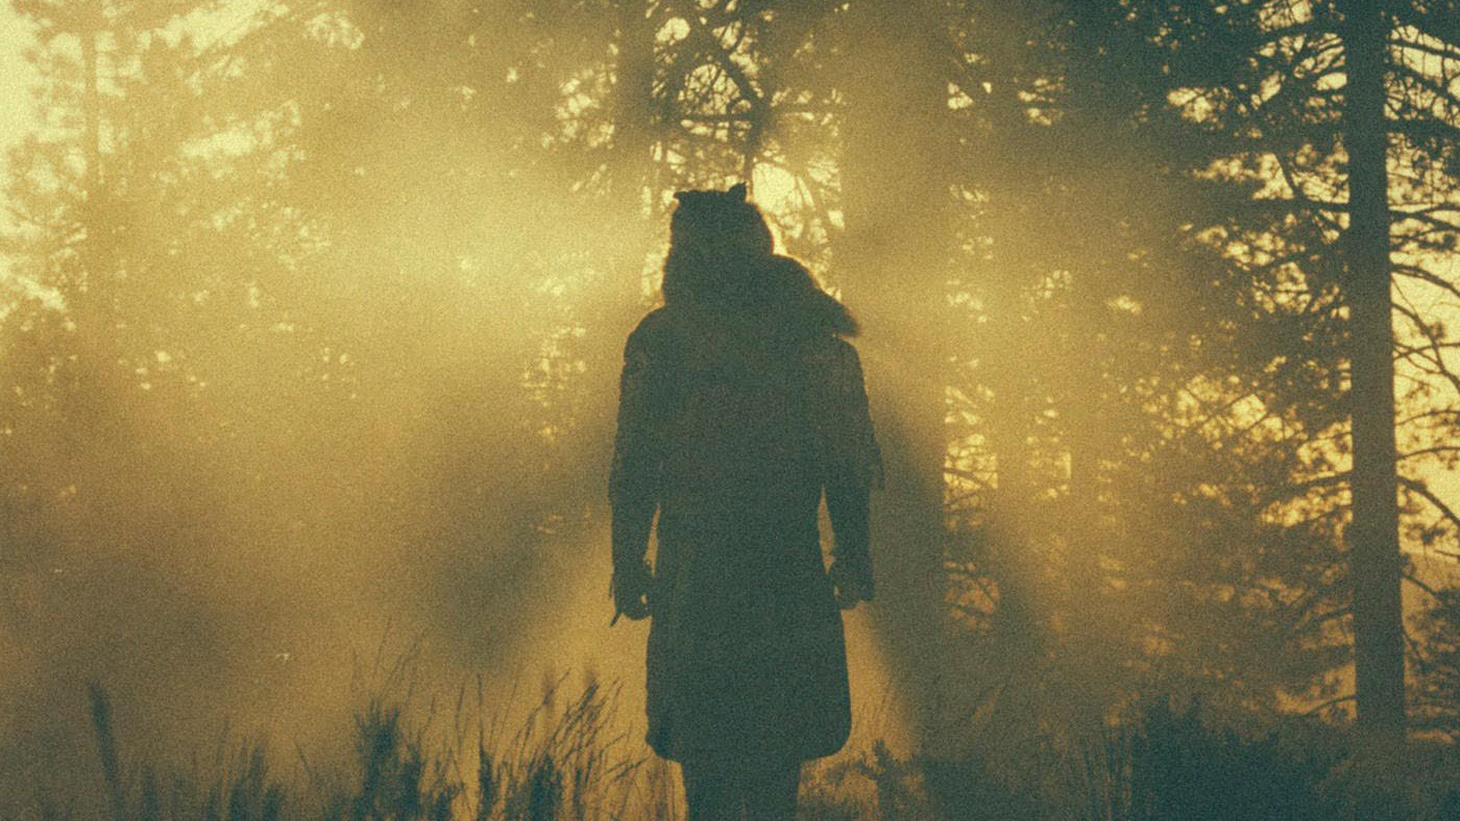 His first solo material in a couple of years, master bassist and singer/songwriter Thundercat unleashes the six-song EP, Beyond Where the Giants Roam.